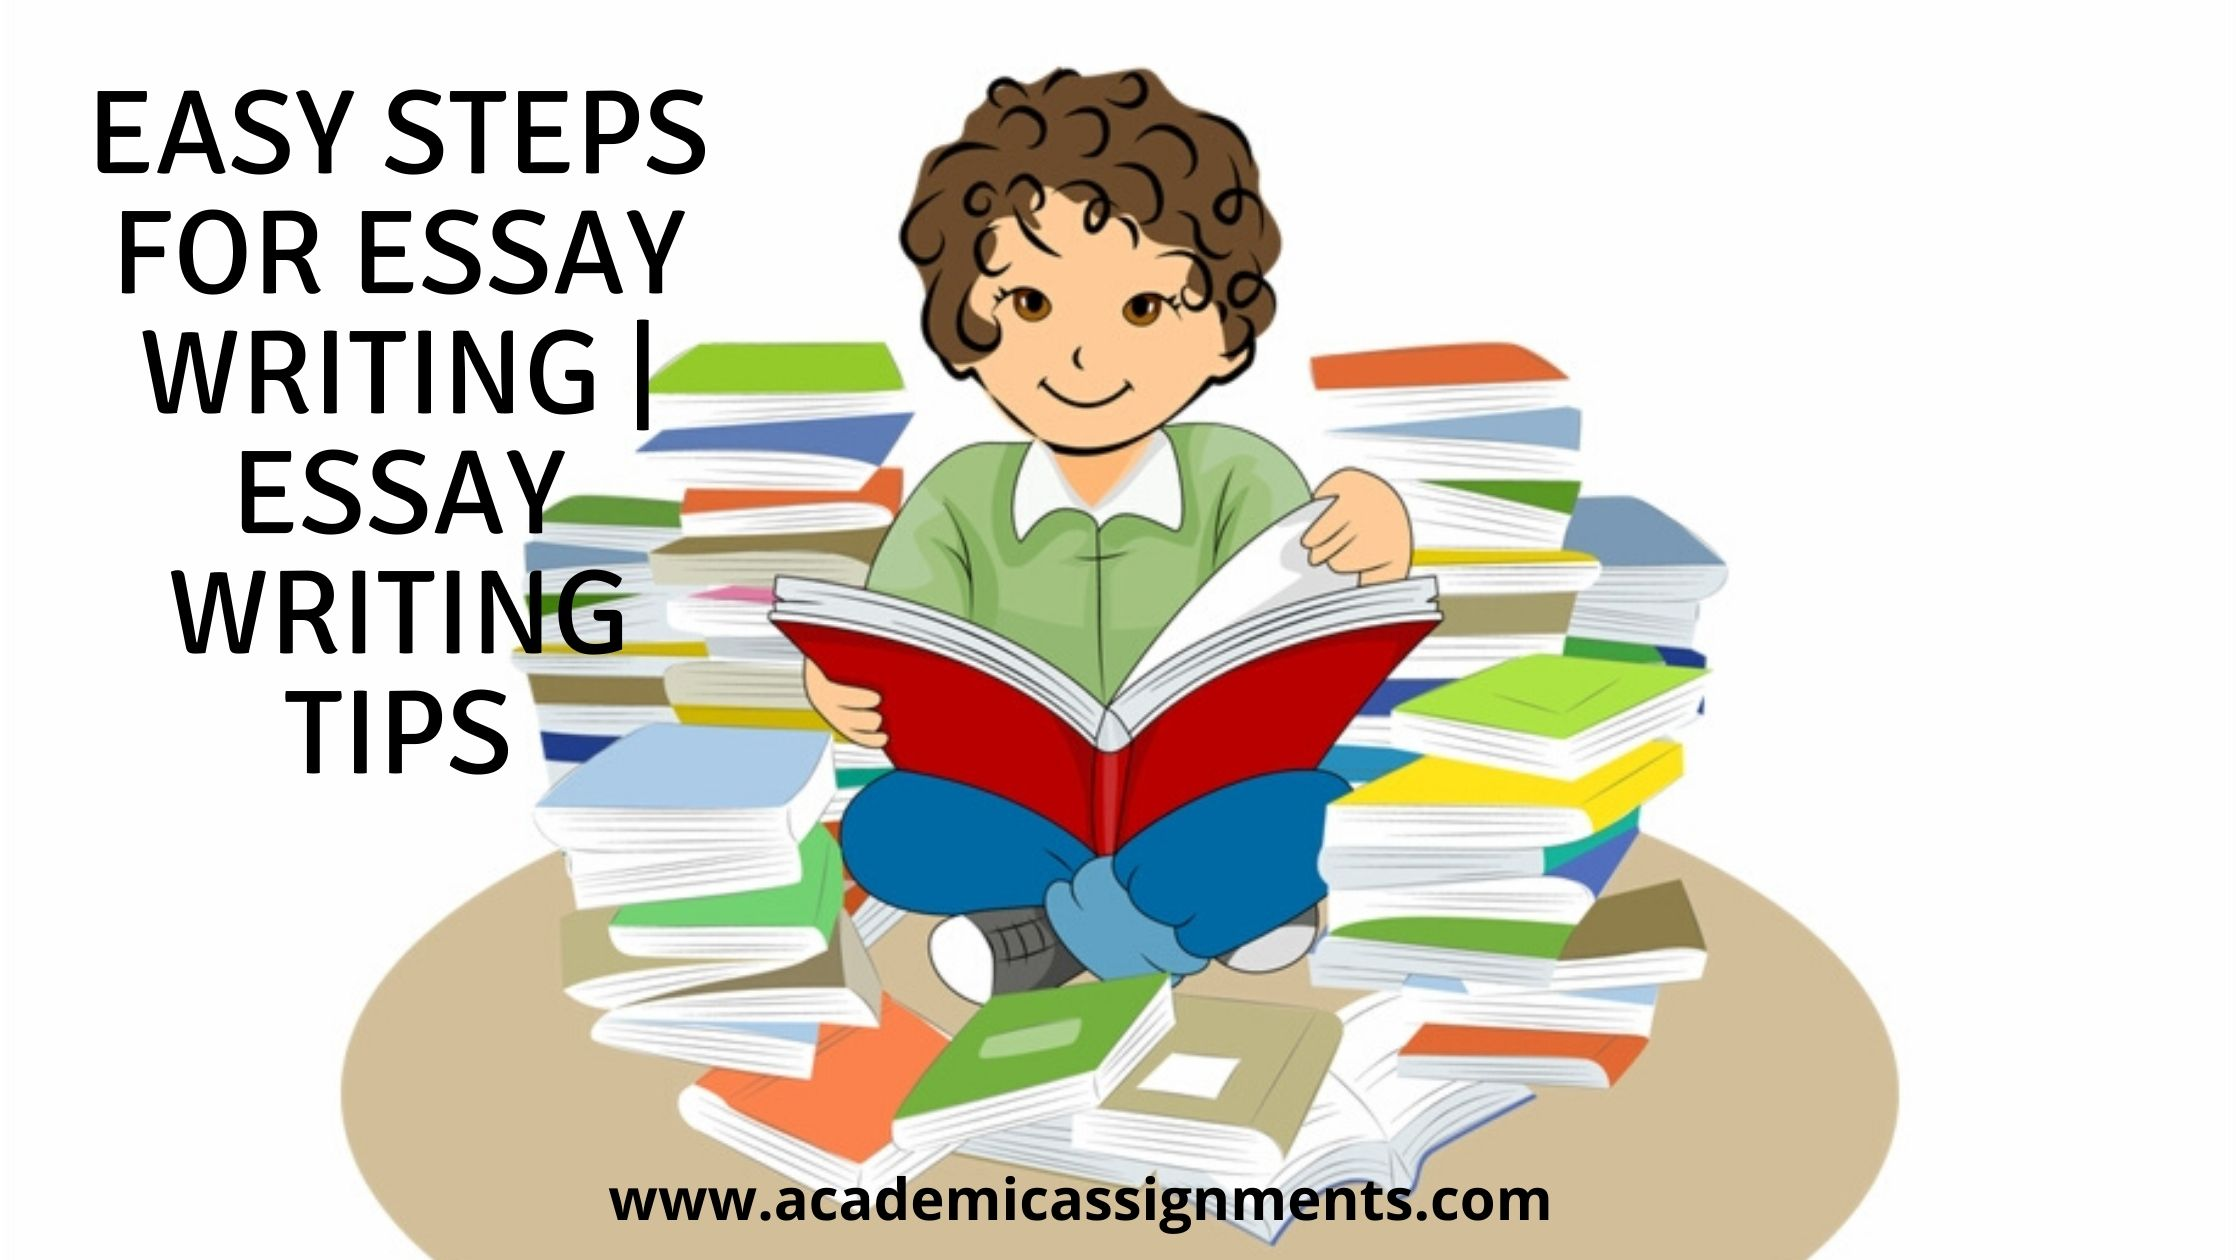 Easy Steps for Essay Writing _ Essay Writing Tips